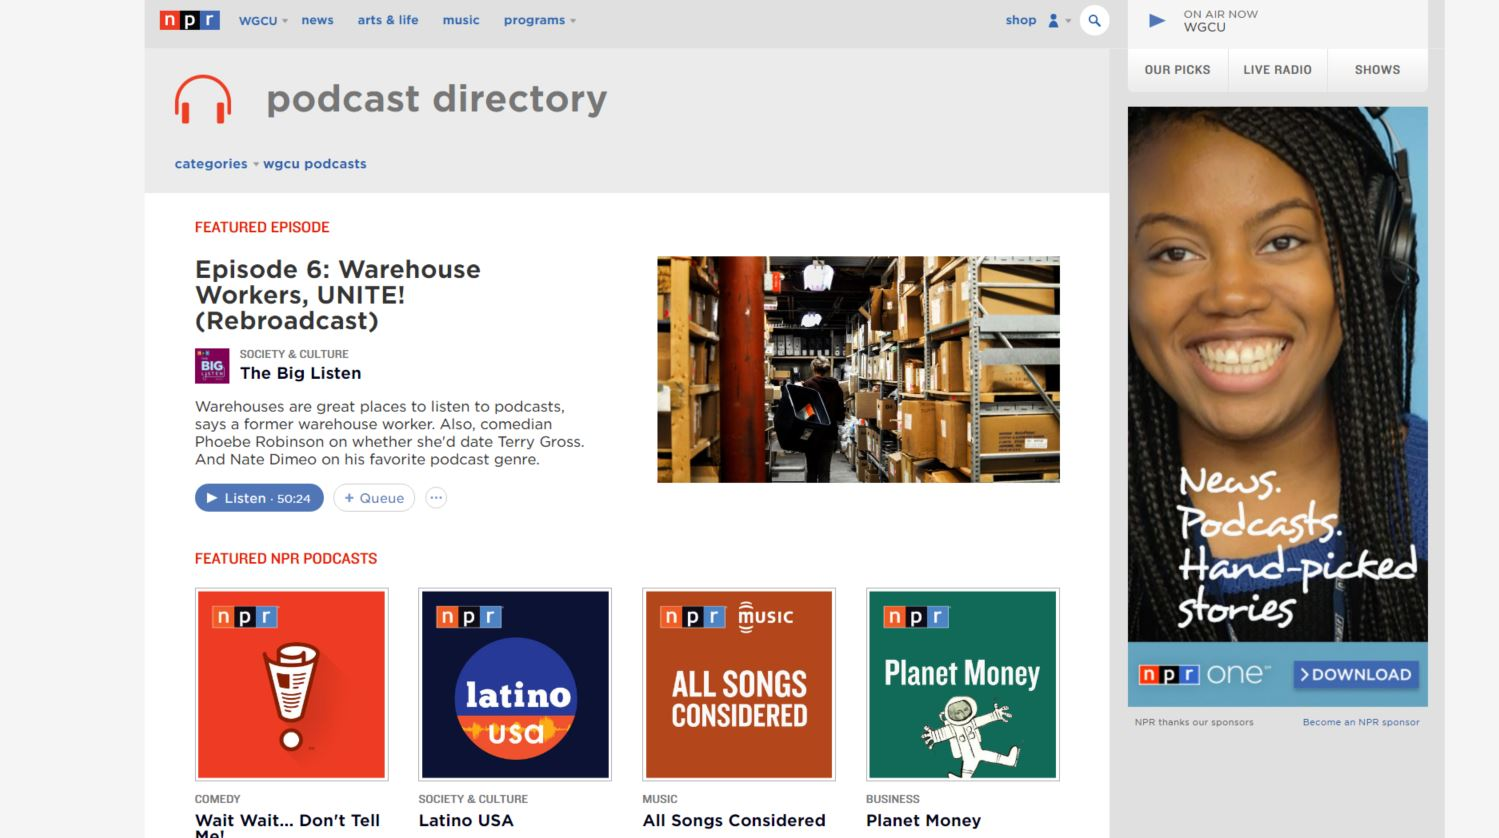 npr podcast directory page